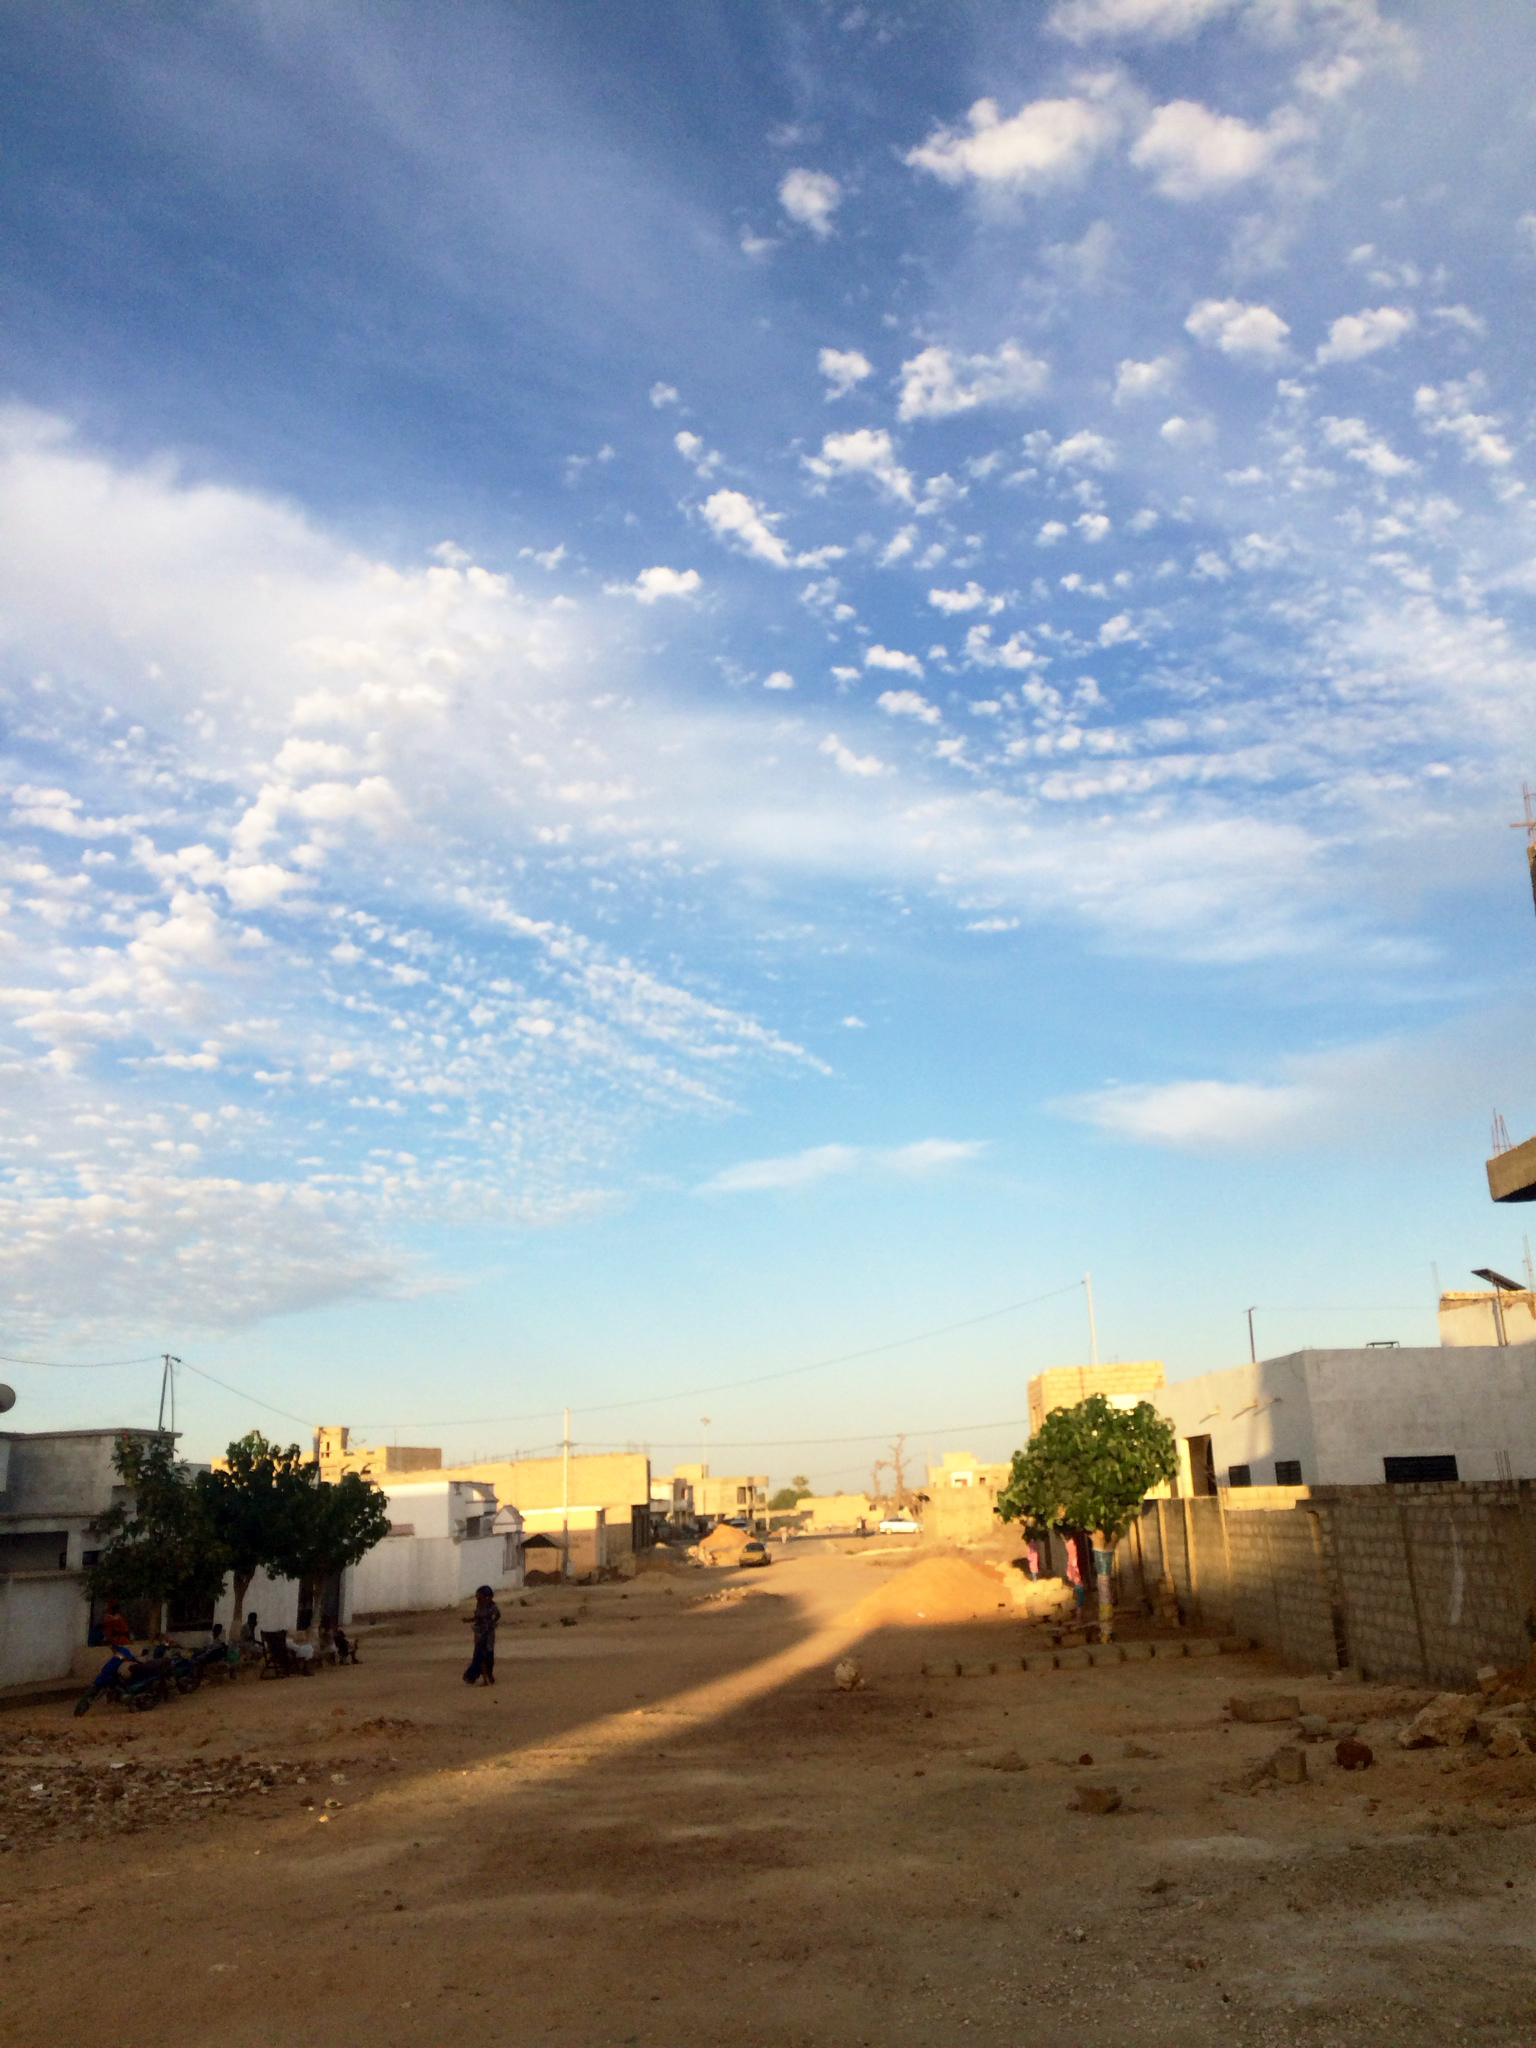 In Dakar, the road near her host family's house